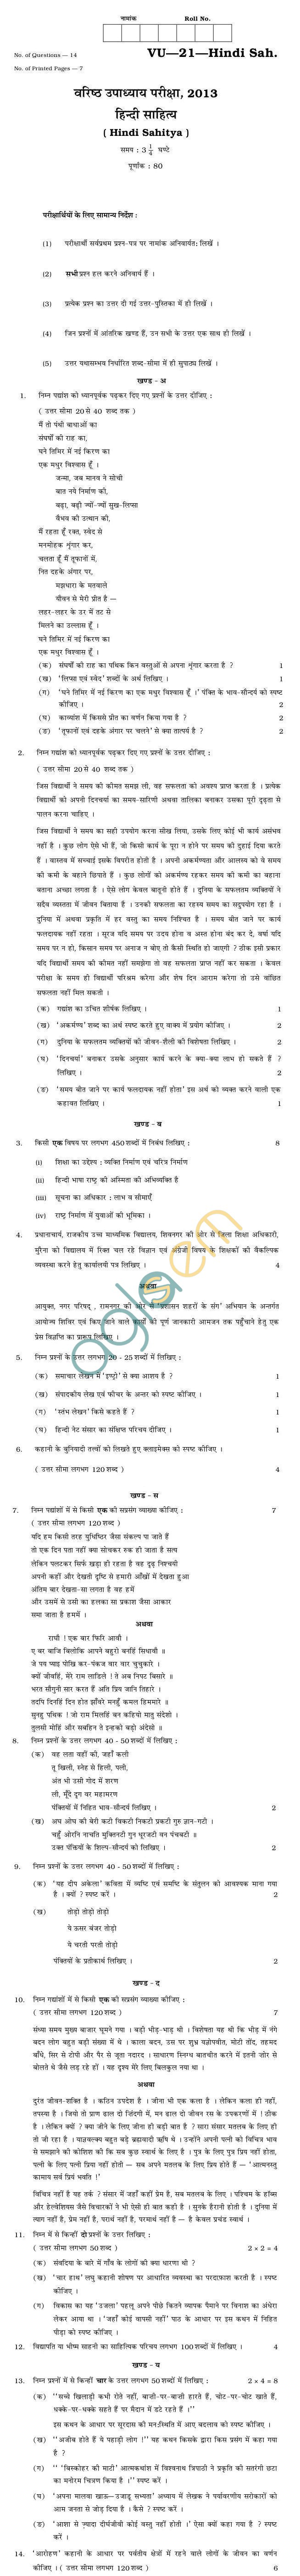 Rajasthan Board V Upadhyay Hindi Sahitya Question Paper 2013